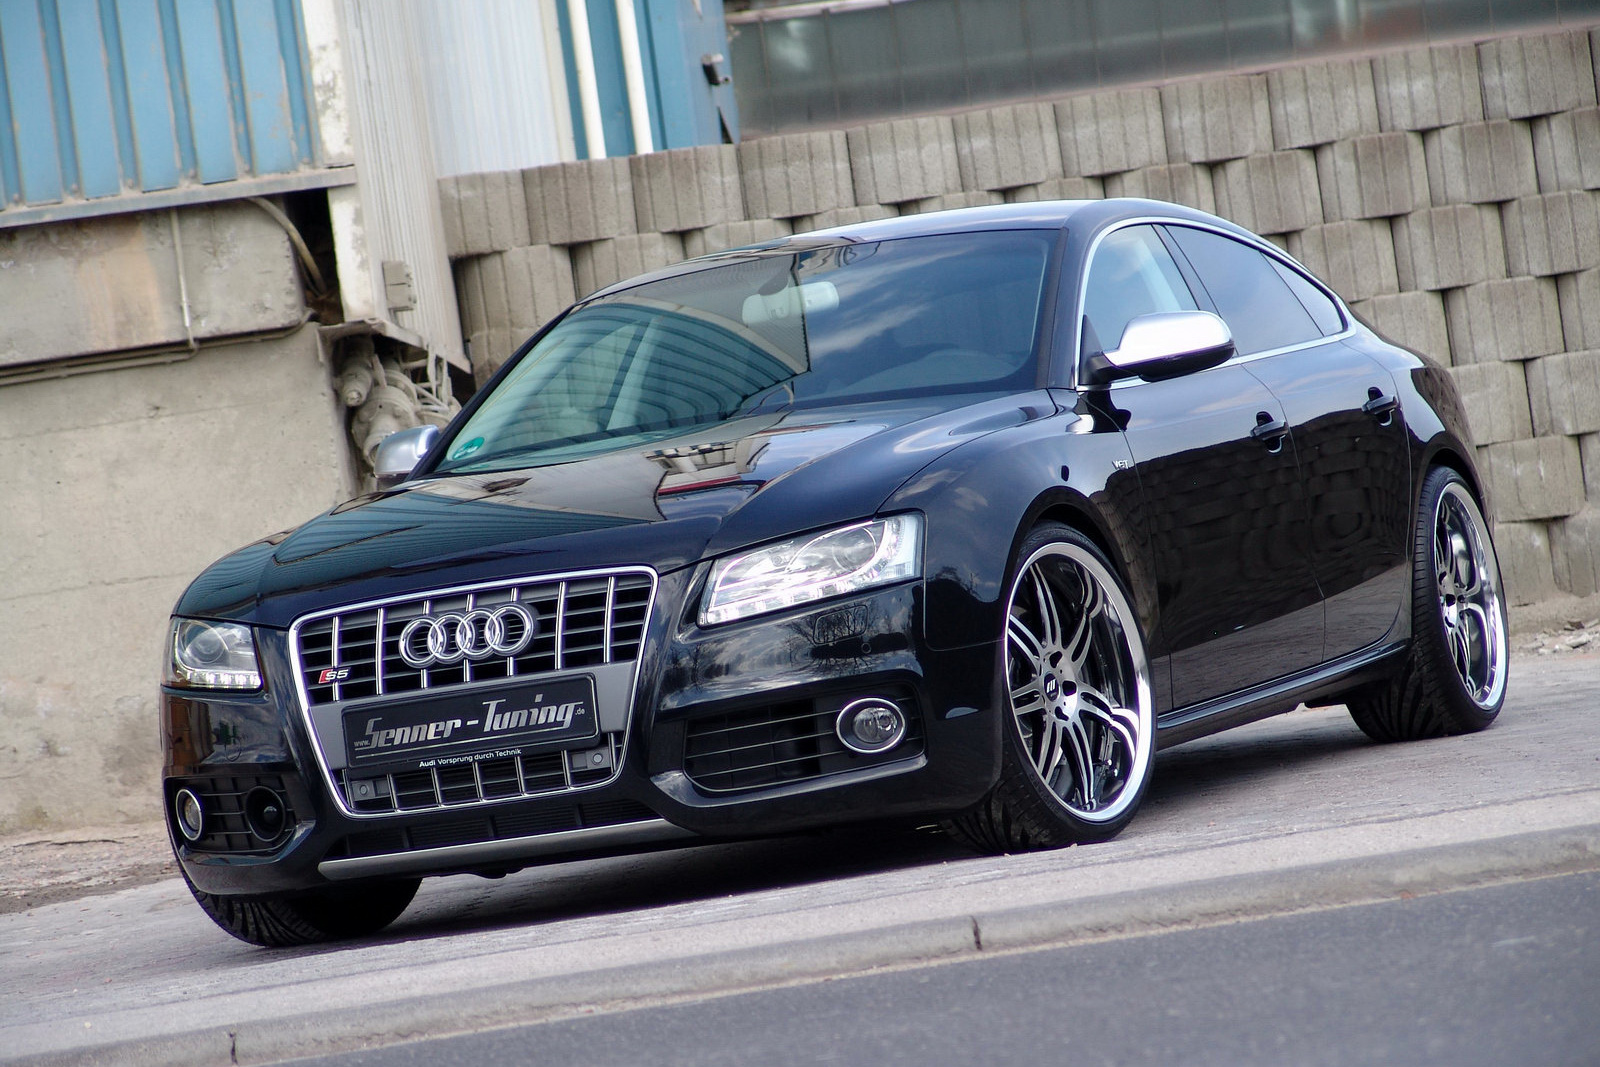 audi s5 sportback grand prix with 375hp by senner tuning. Black Bedroom Furniture Sets. Home Design Ideas